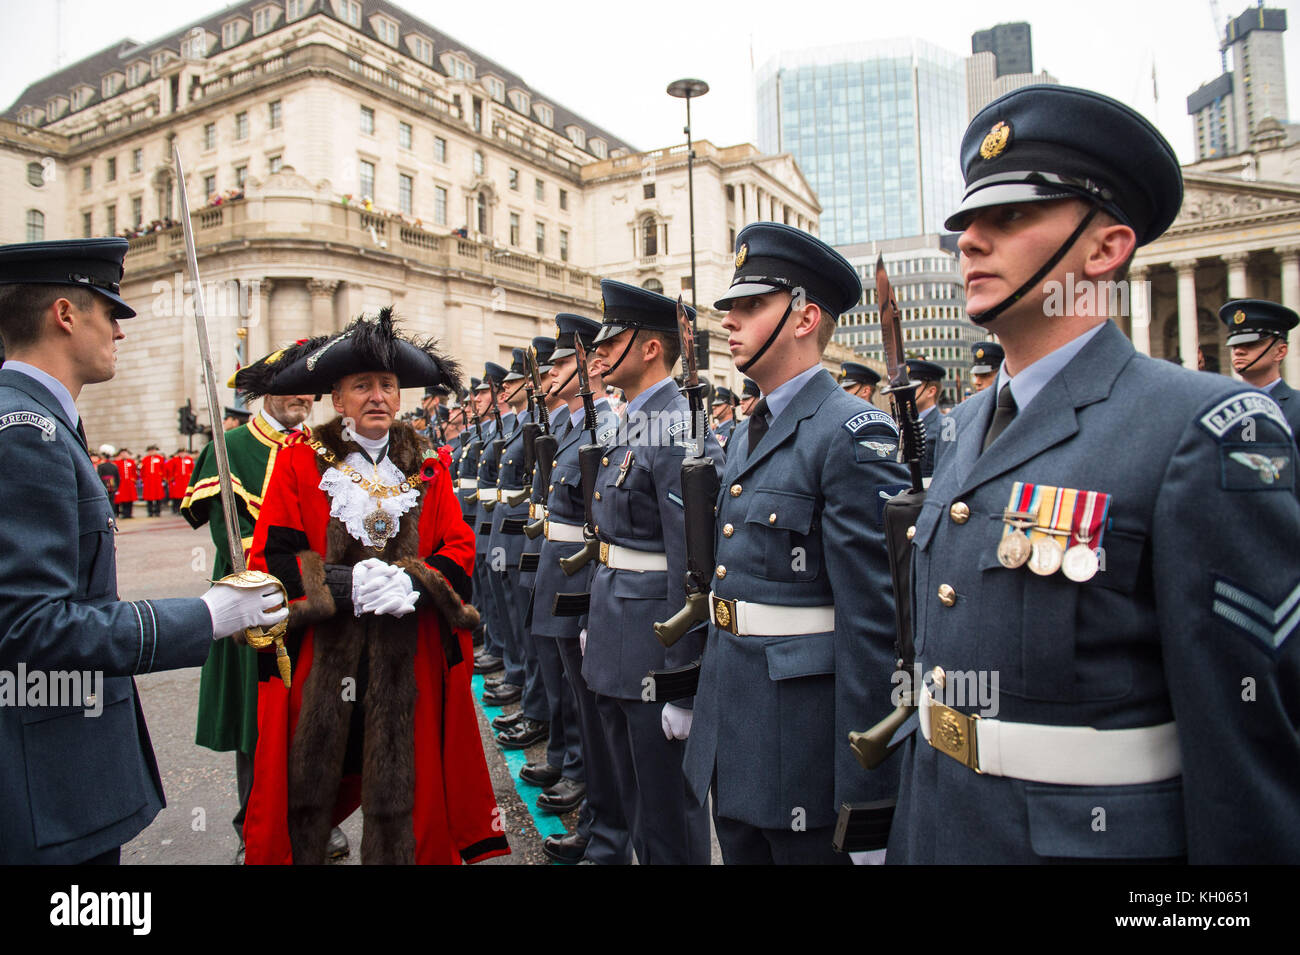 The new Lord Mayor of London Charles Bowman inspects troops outside Mansion House during the Lord Mayor's Show - Stock Image